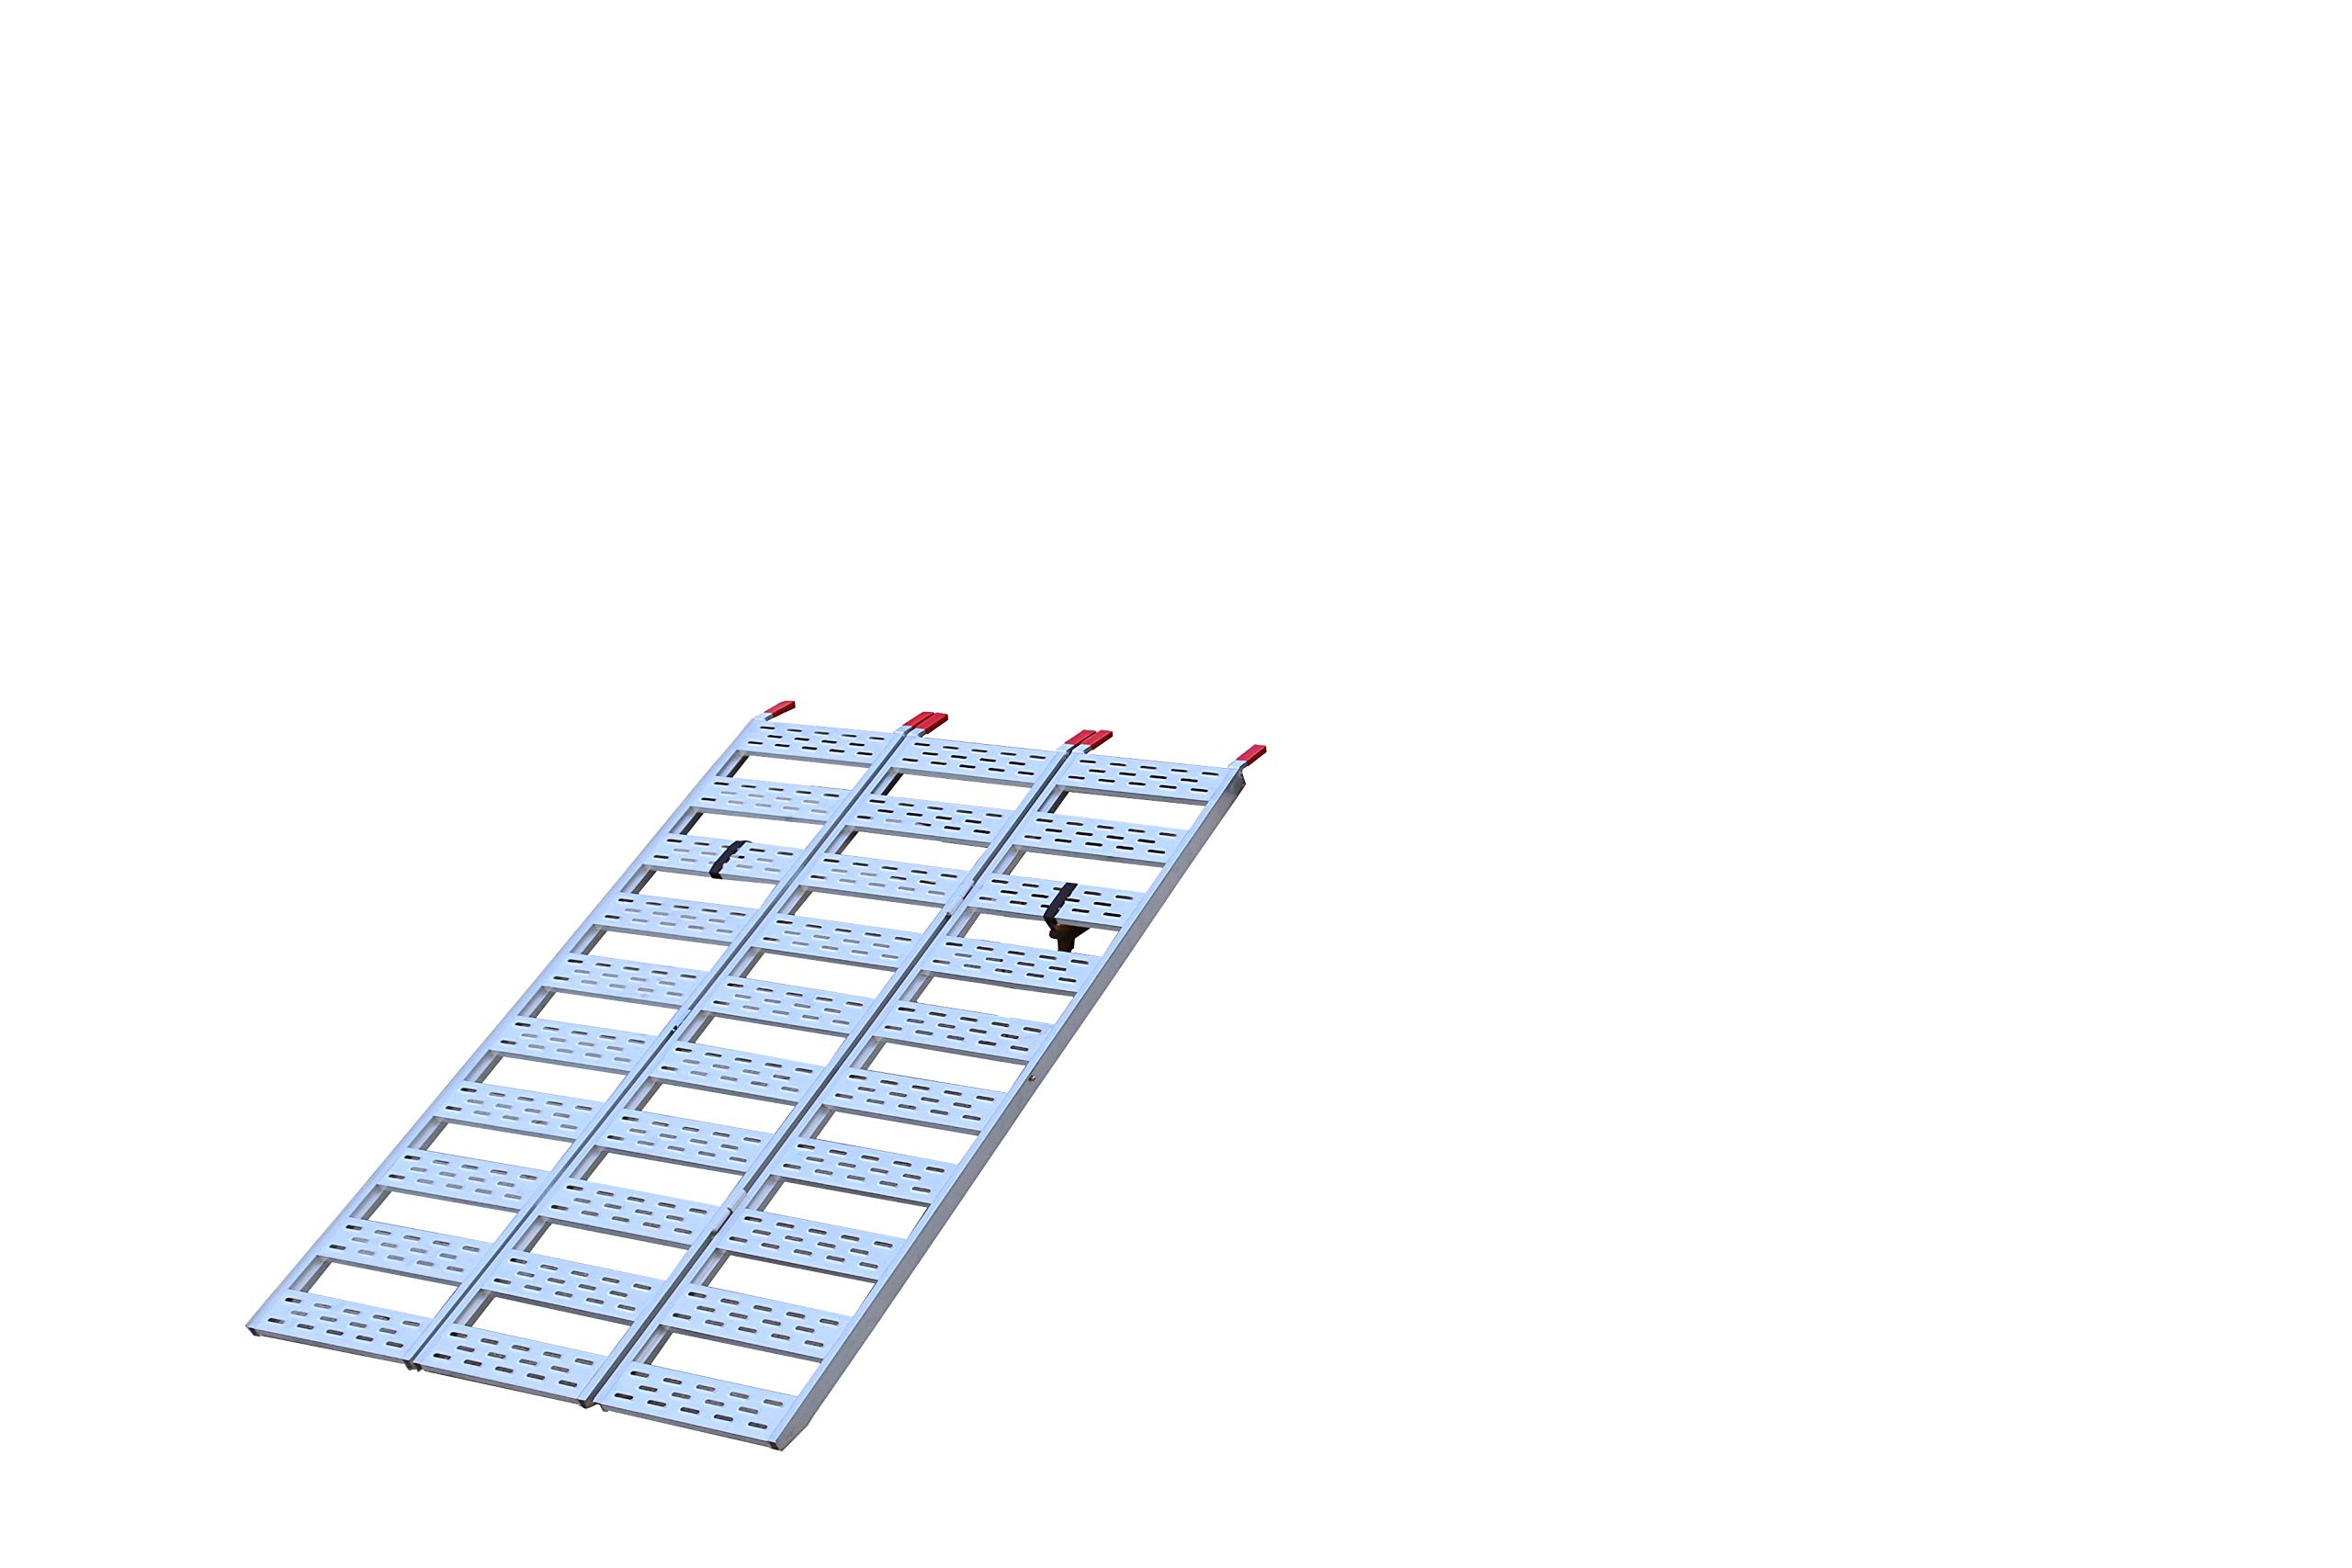 """CargoSmart Aluminum Tri-Fold Ramp with Treads (1pk) – Easily and Safely Load and Unload Push Mowers, Garden Tillers, ATVs and More, 1,500 lb. Capacity, 50"""" W x 76"""" L"""